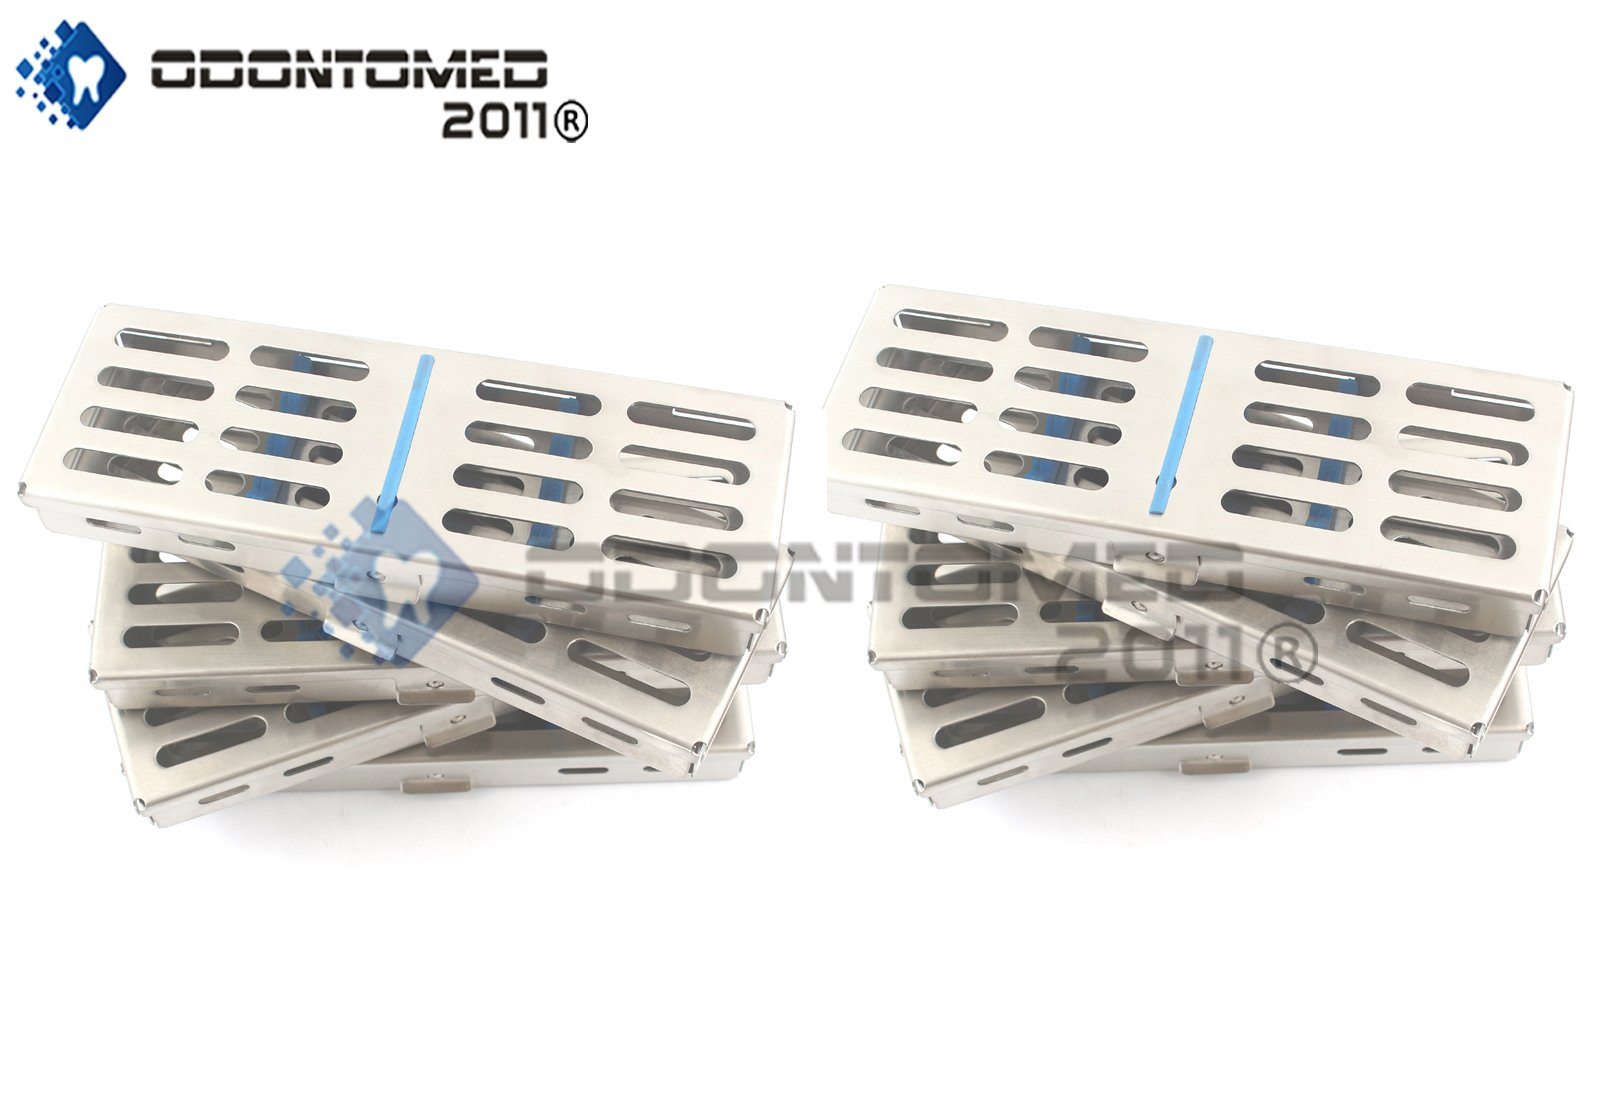 OdontoMed2011 NEW SET OF 10 EACH GERMAN GRADE DENTAL AUTOCLAVE STERILIZATION CASSETTE RACK BOX TRAY FOR 5 INSTRUMENT ODM